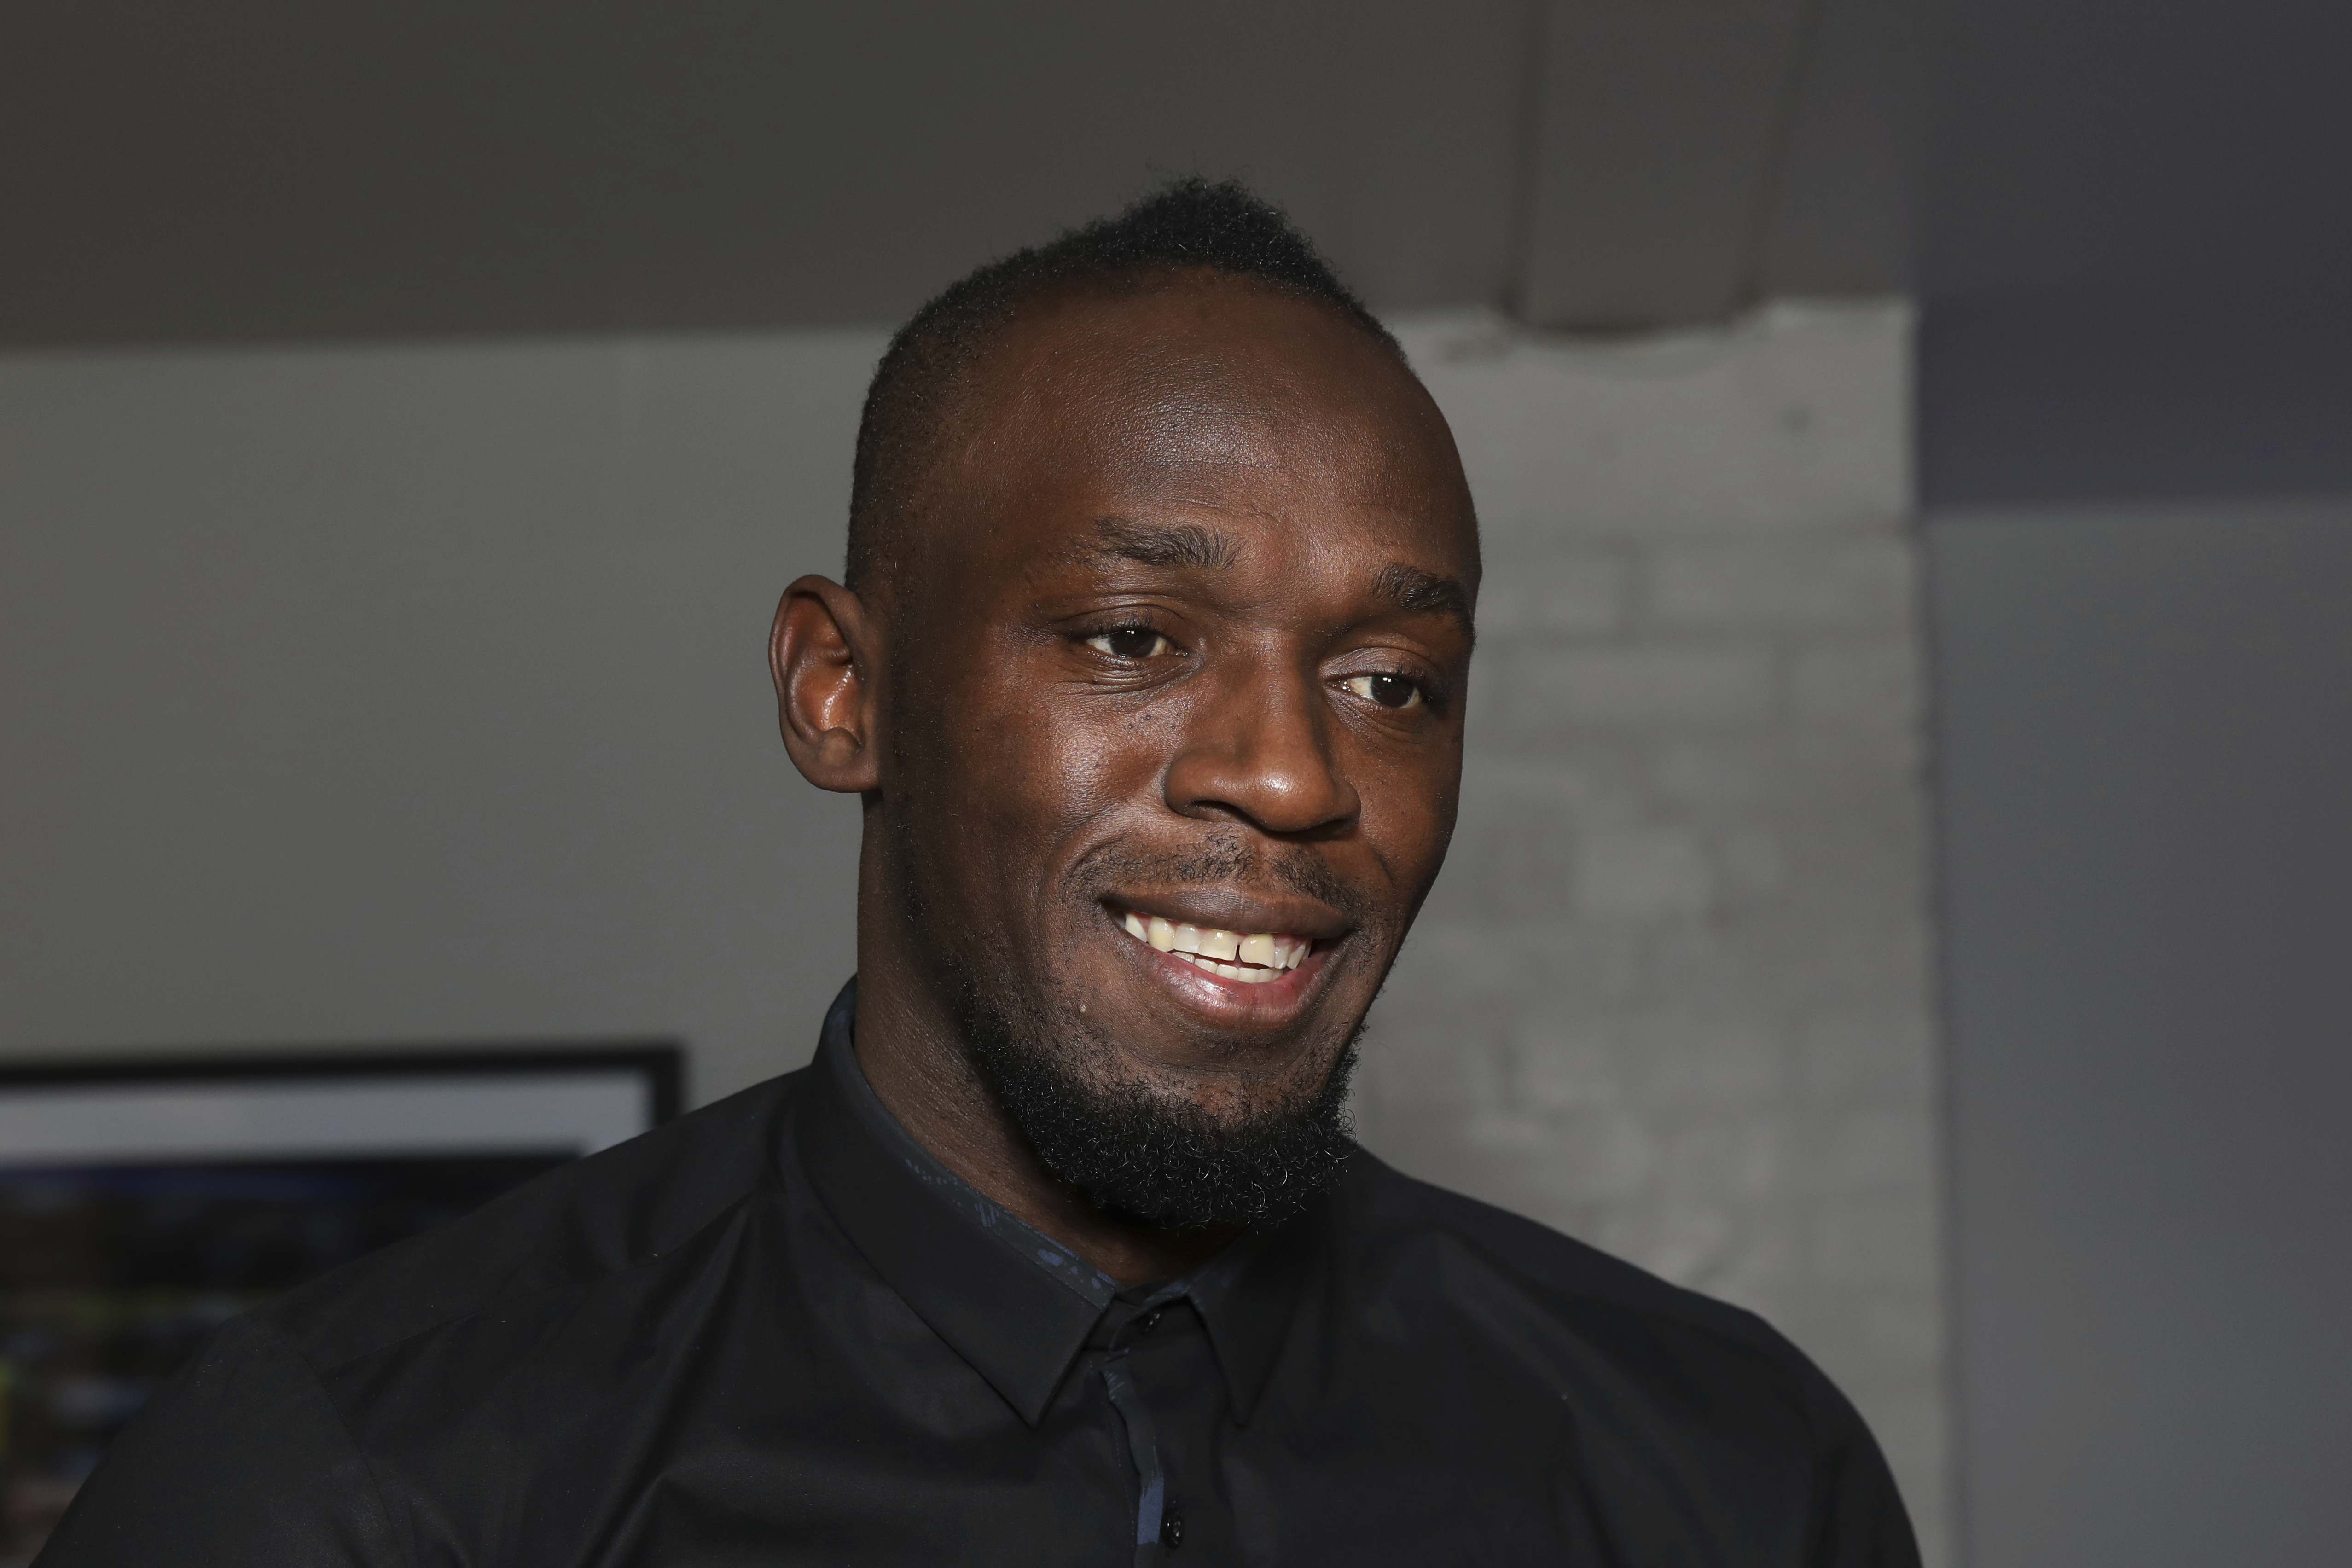 Usain Bolt 'retires' from football, says it was 'fun while it lasted'